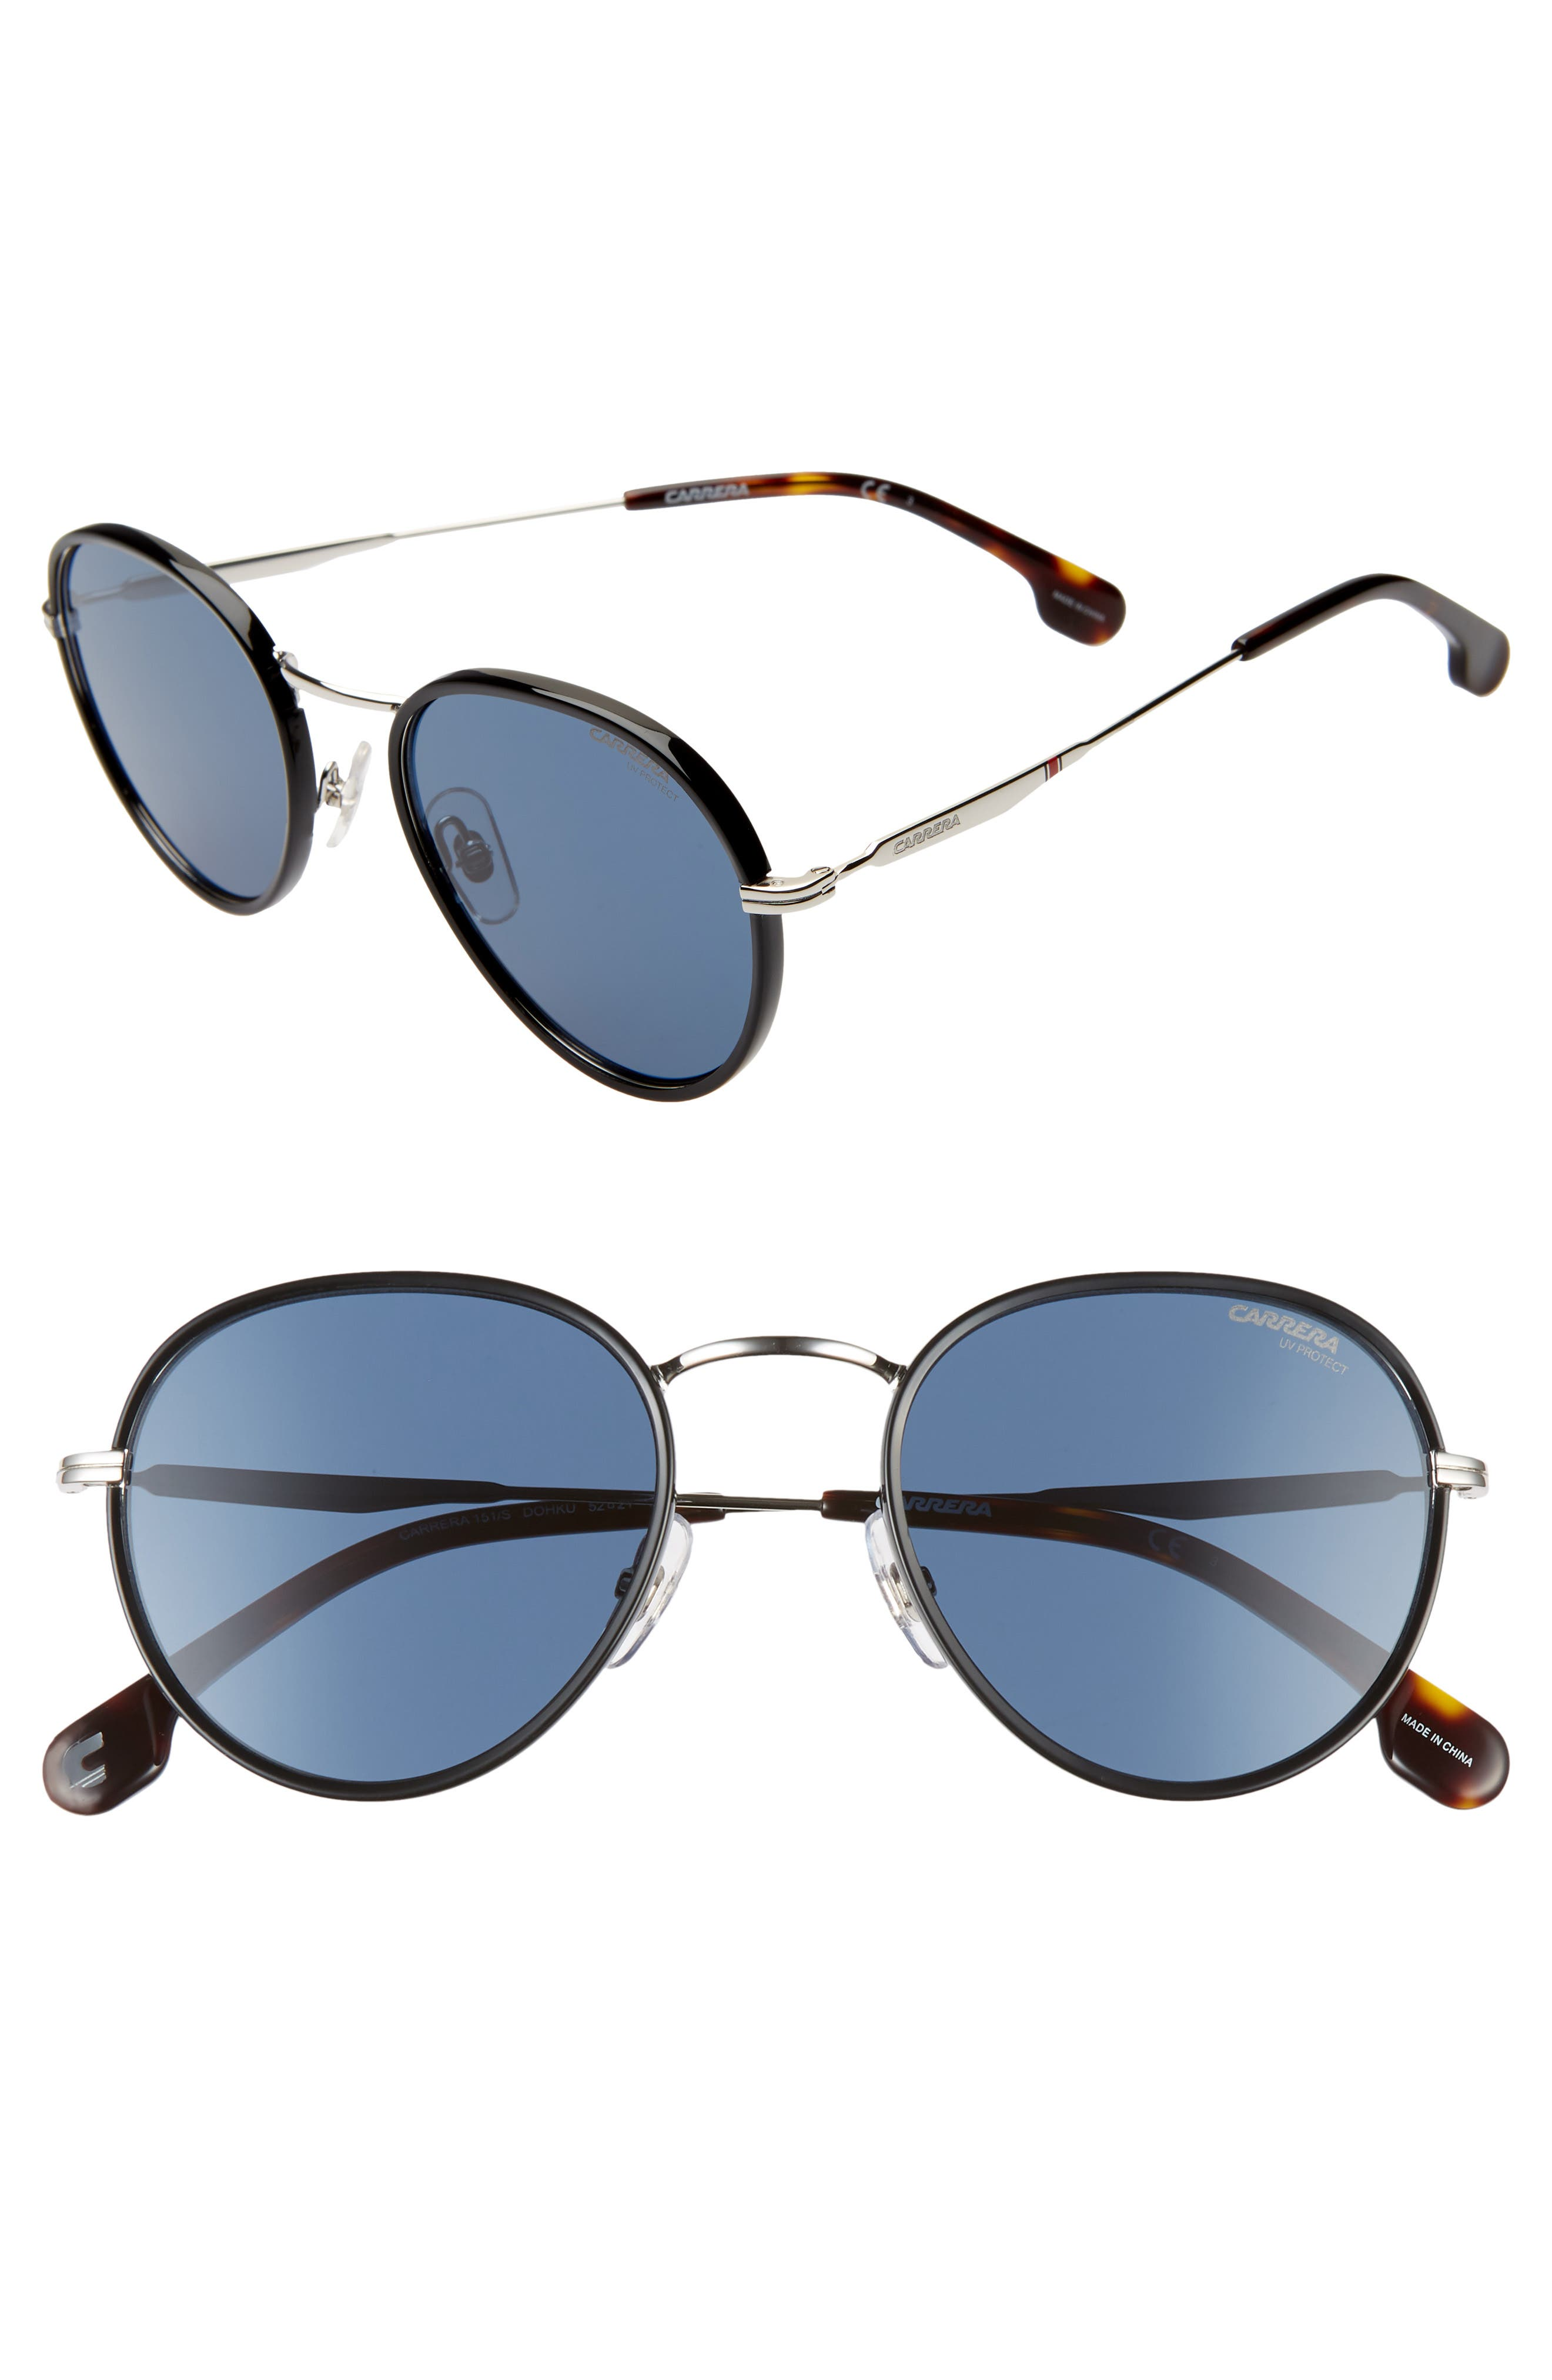 Carrera Eyewear 52Mm Round Sunglasses - Palladium Blue